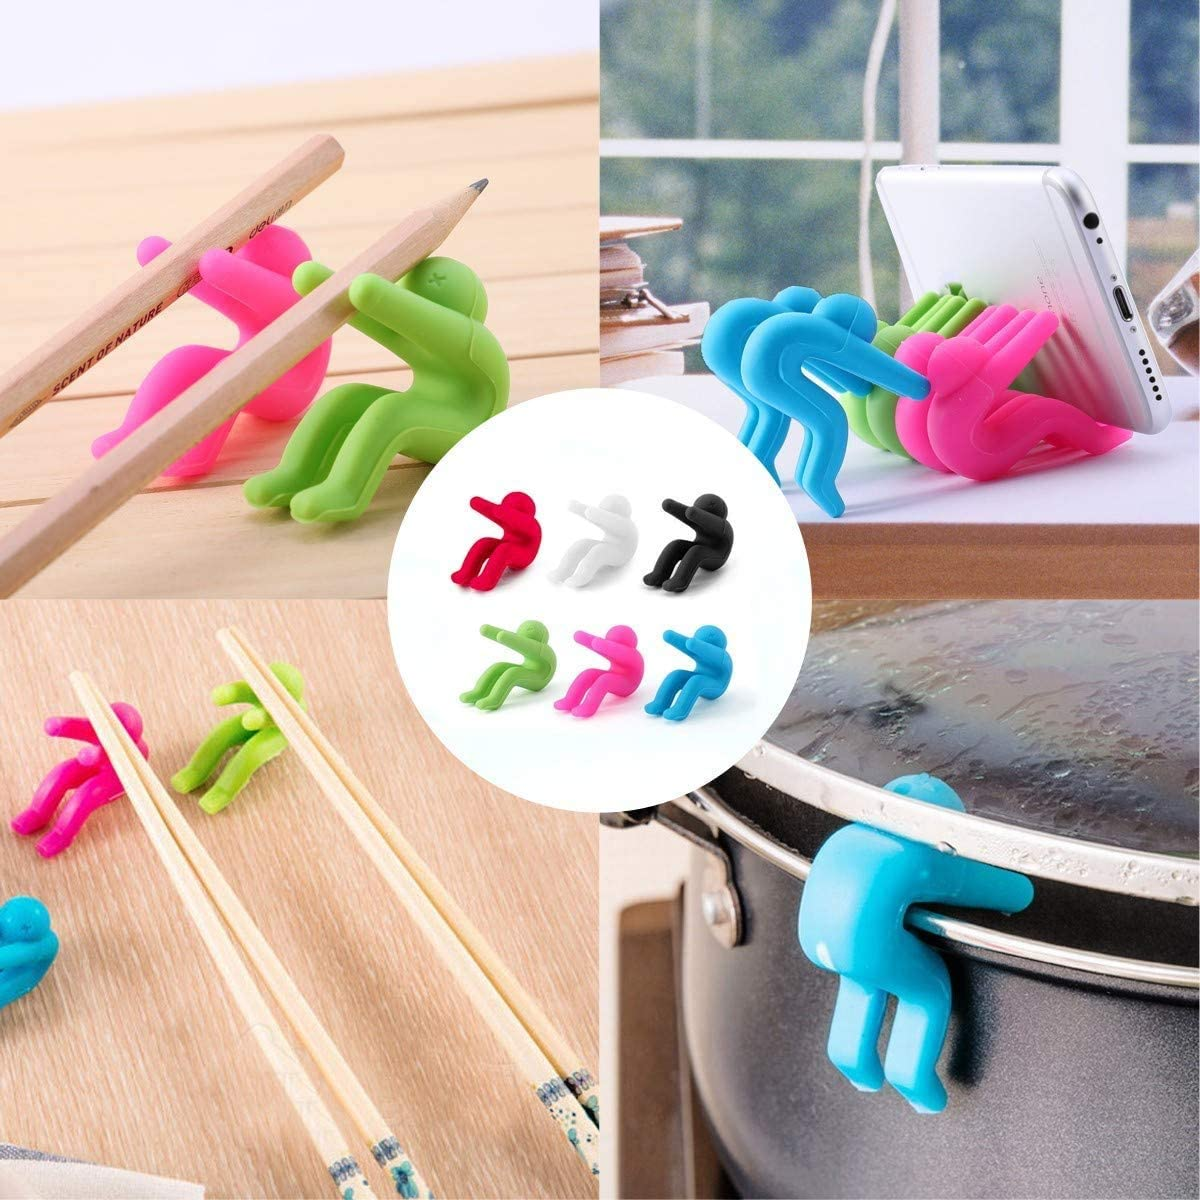 Kitchen Tools Lid Stand Heat Resistant Holder Keep The Lid Open Spill-proof Lid Lifter for Soup Pot 6 Pack Great Cooking Helpers and Decoration